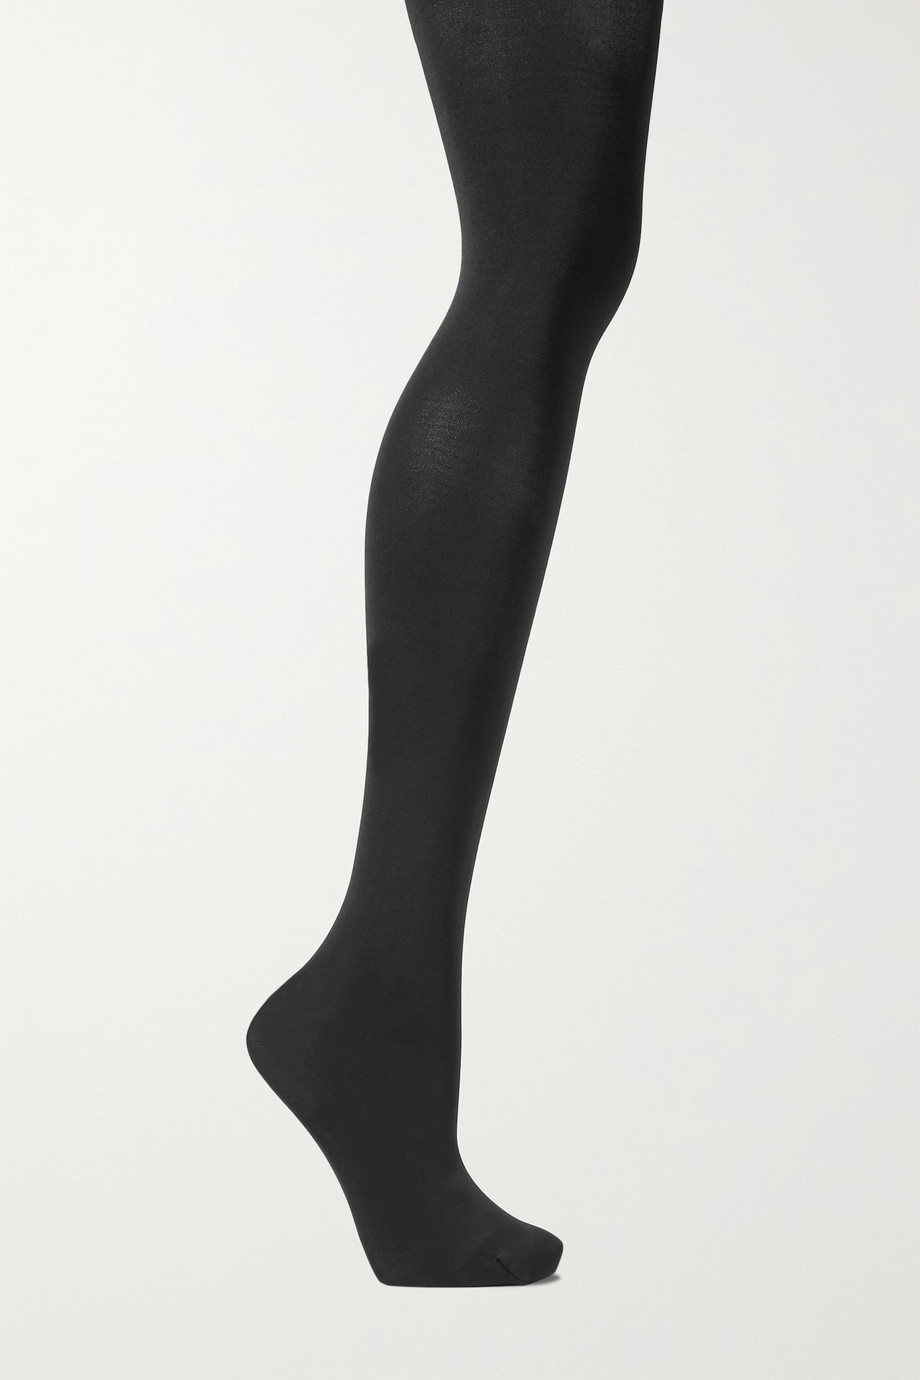 Spanx Luxe Leg high-rise 60 denier shaping tights